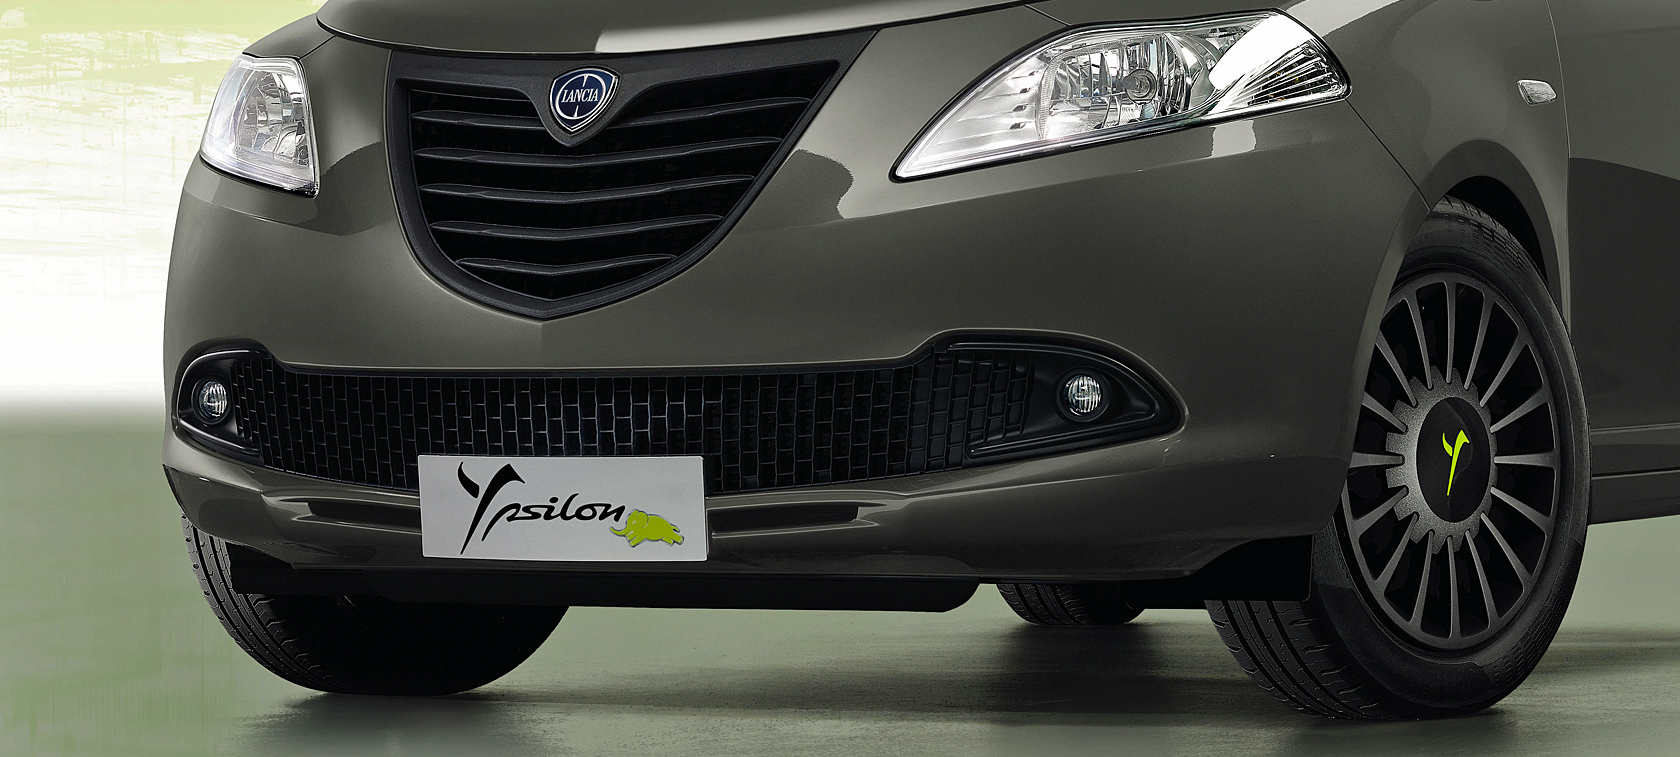 Fiat's LPG/CNG-powered premieres in Geneva